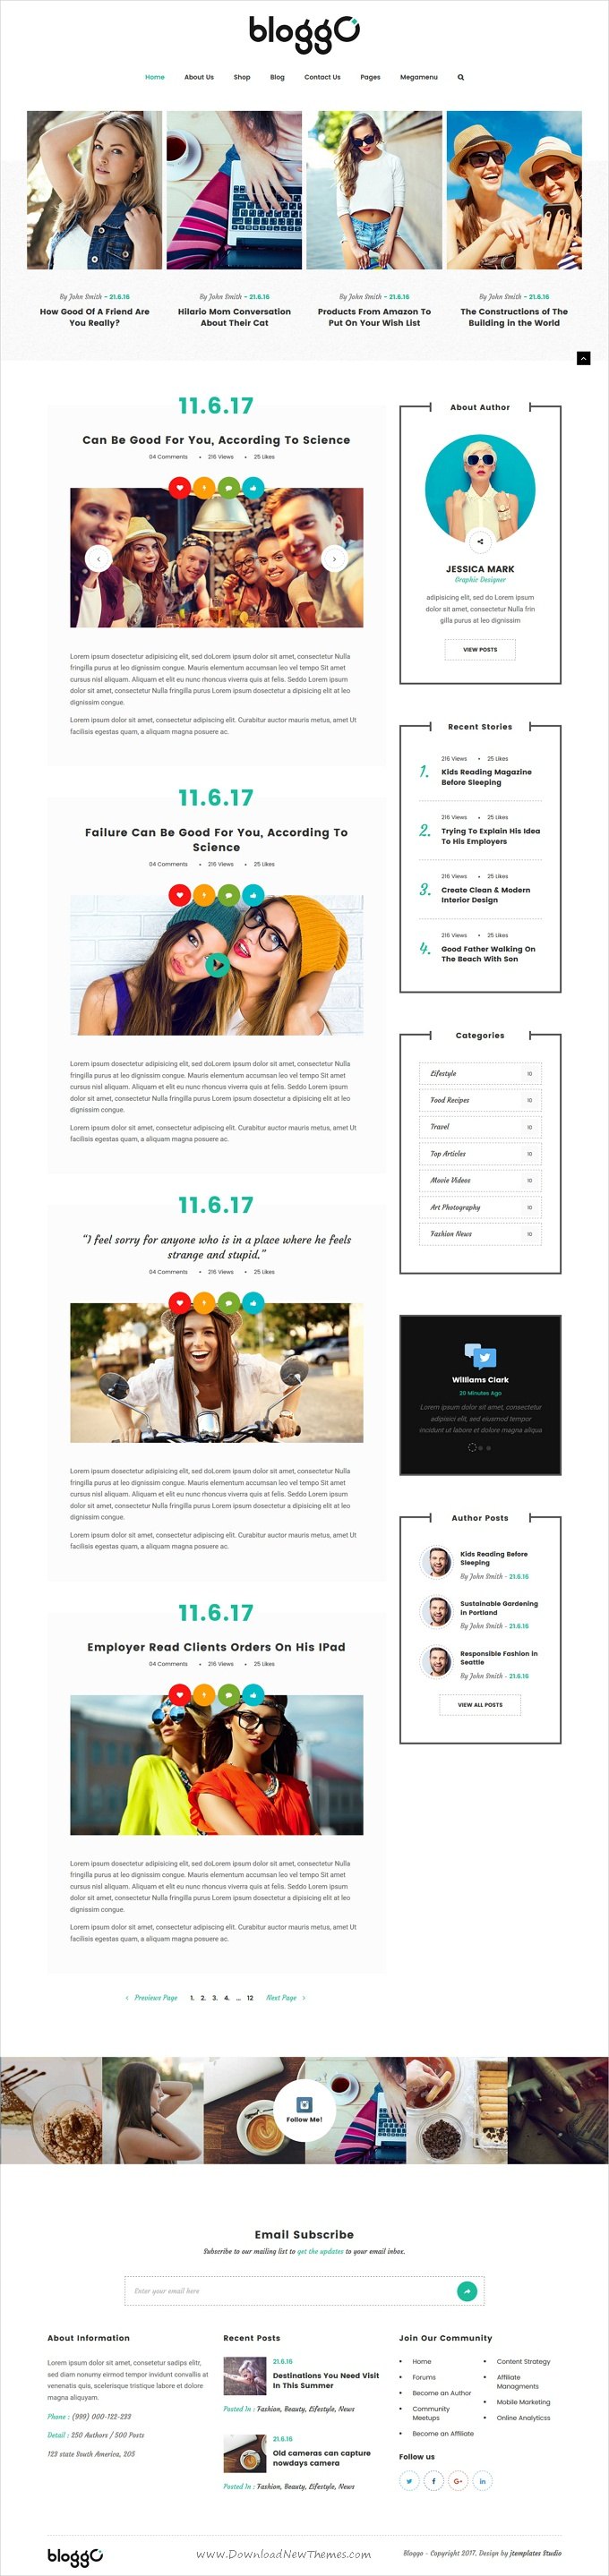 Bloggo - Multipurpose Blog Template | Template